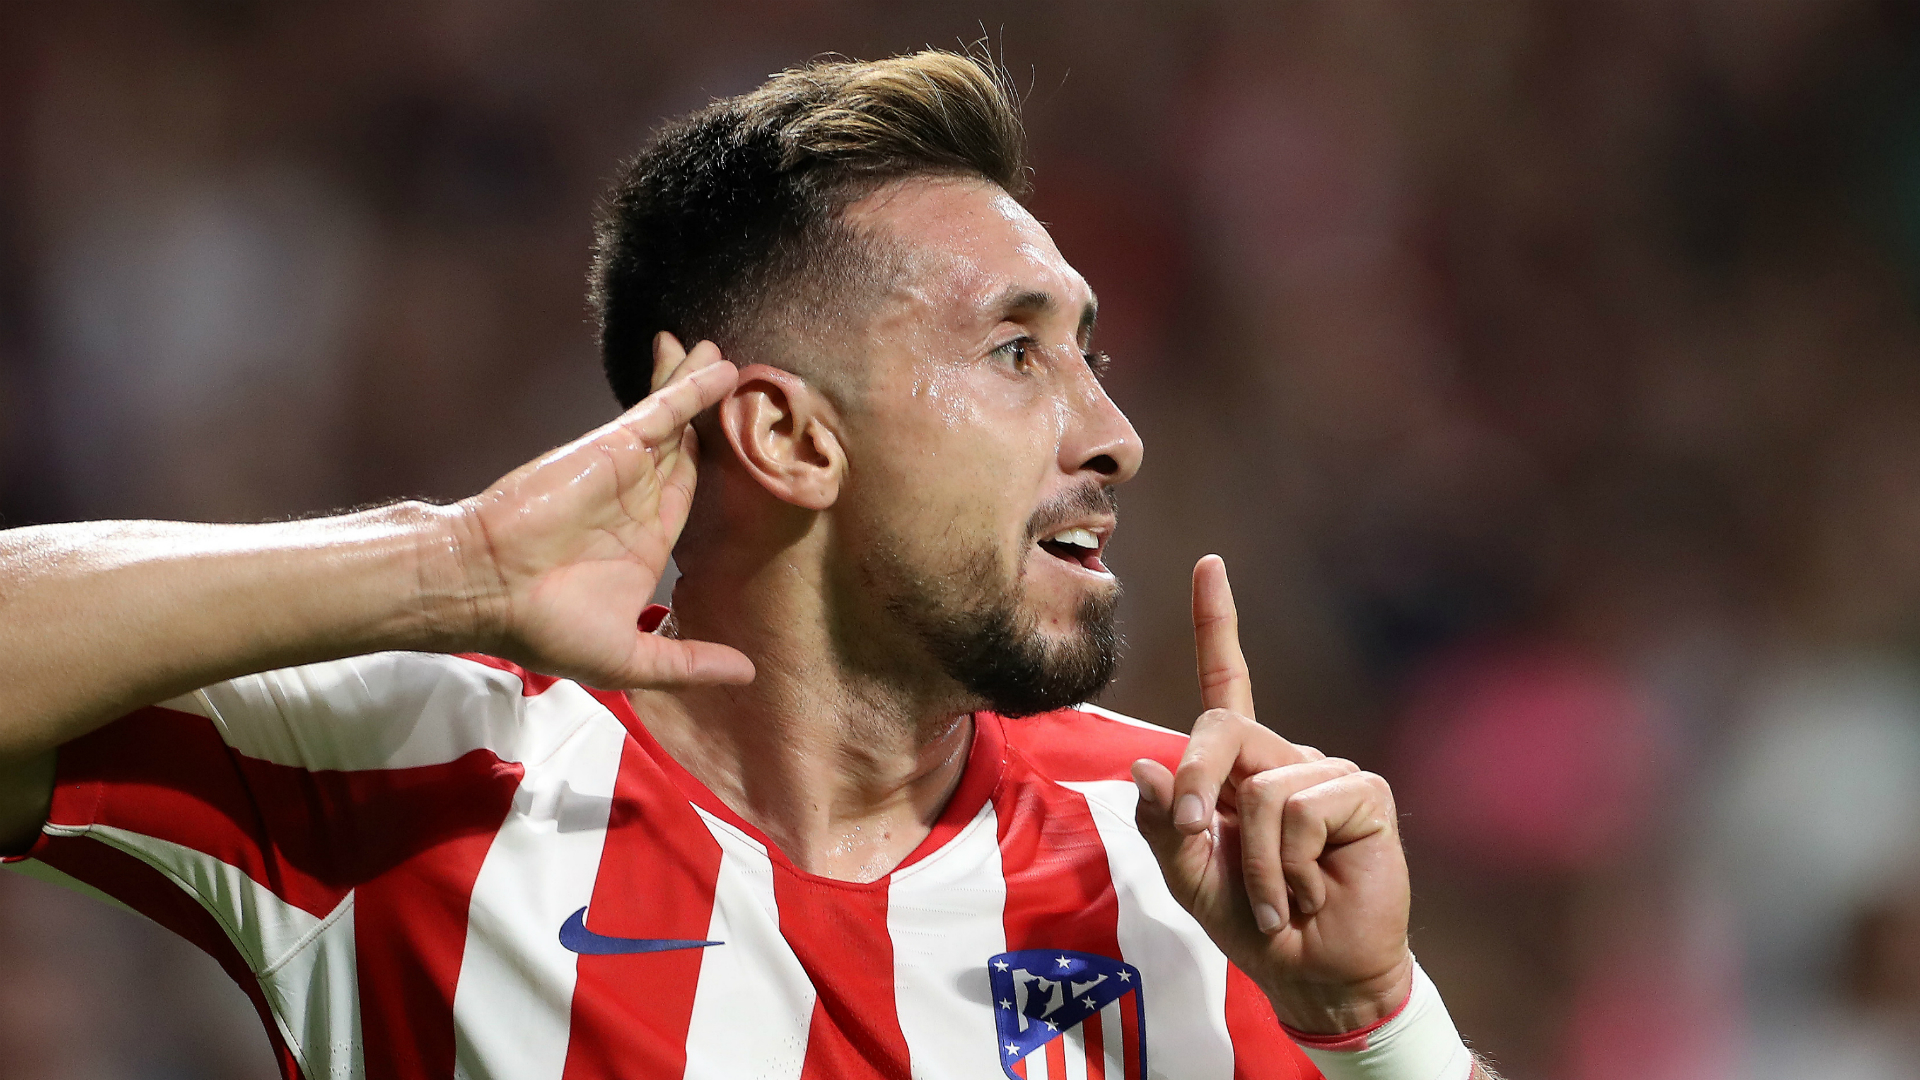 Atletico Madrid 2-2 Juventus: Late Herrera header earns Group D draw